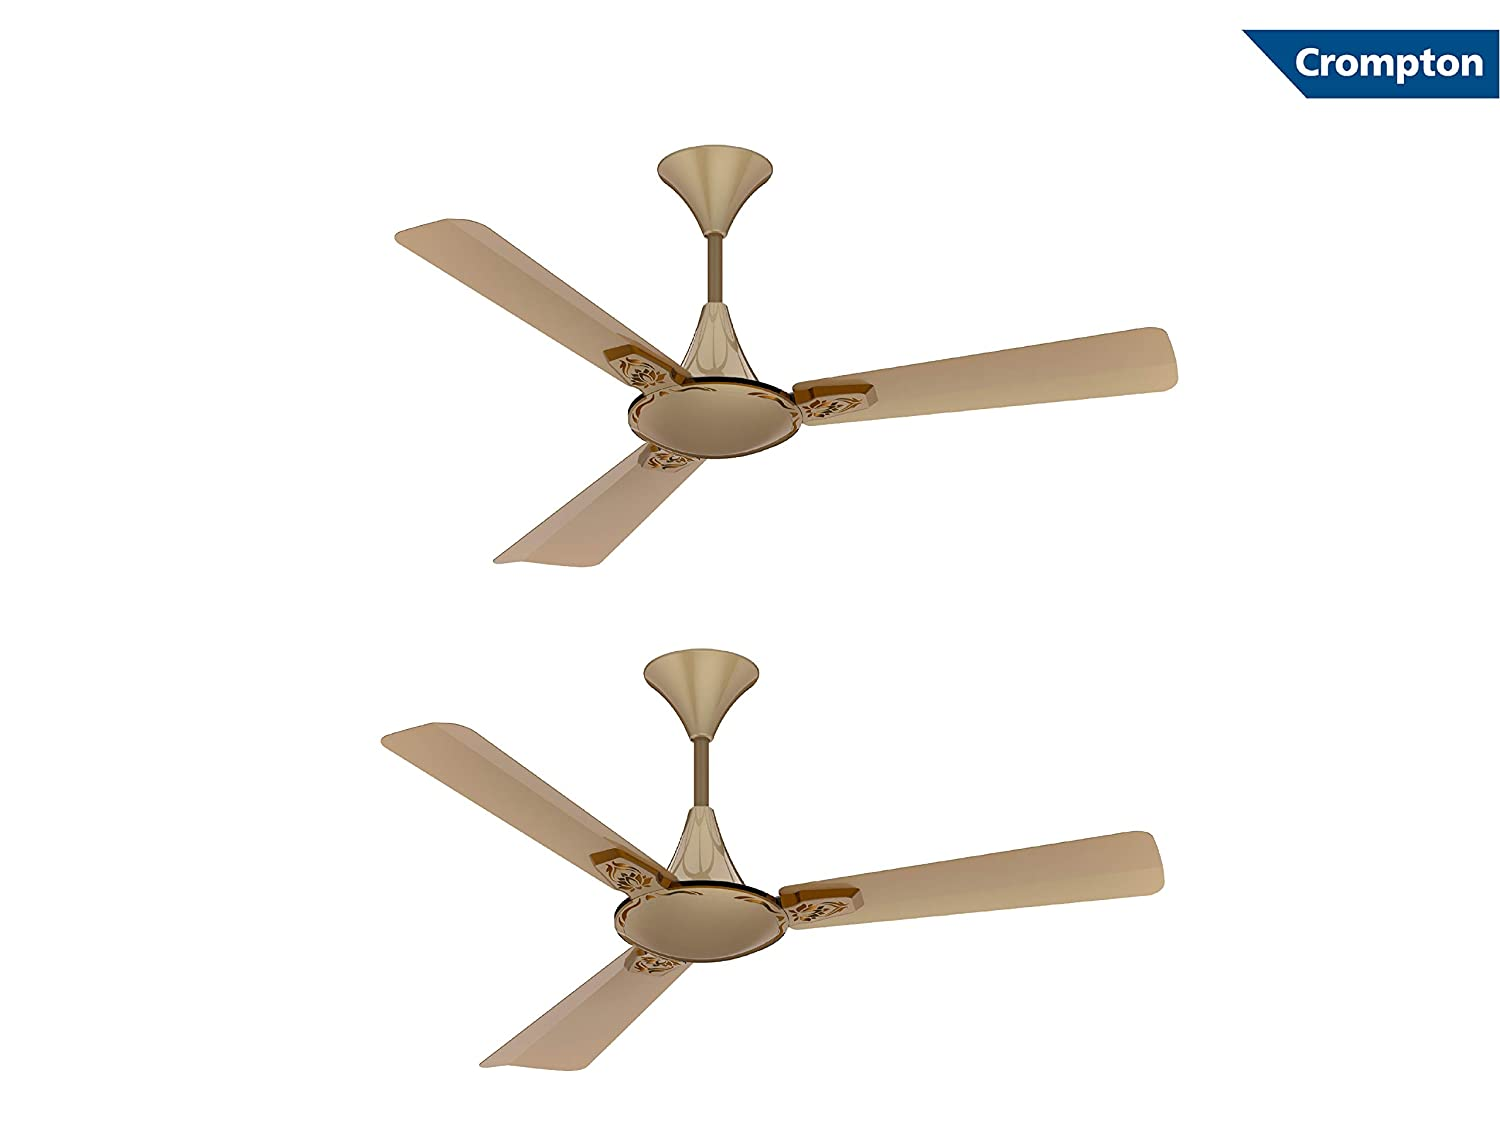 Crompton Ceiling Fan Capacitor Connection